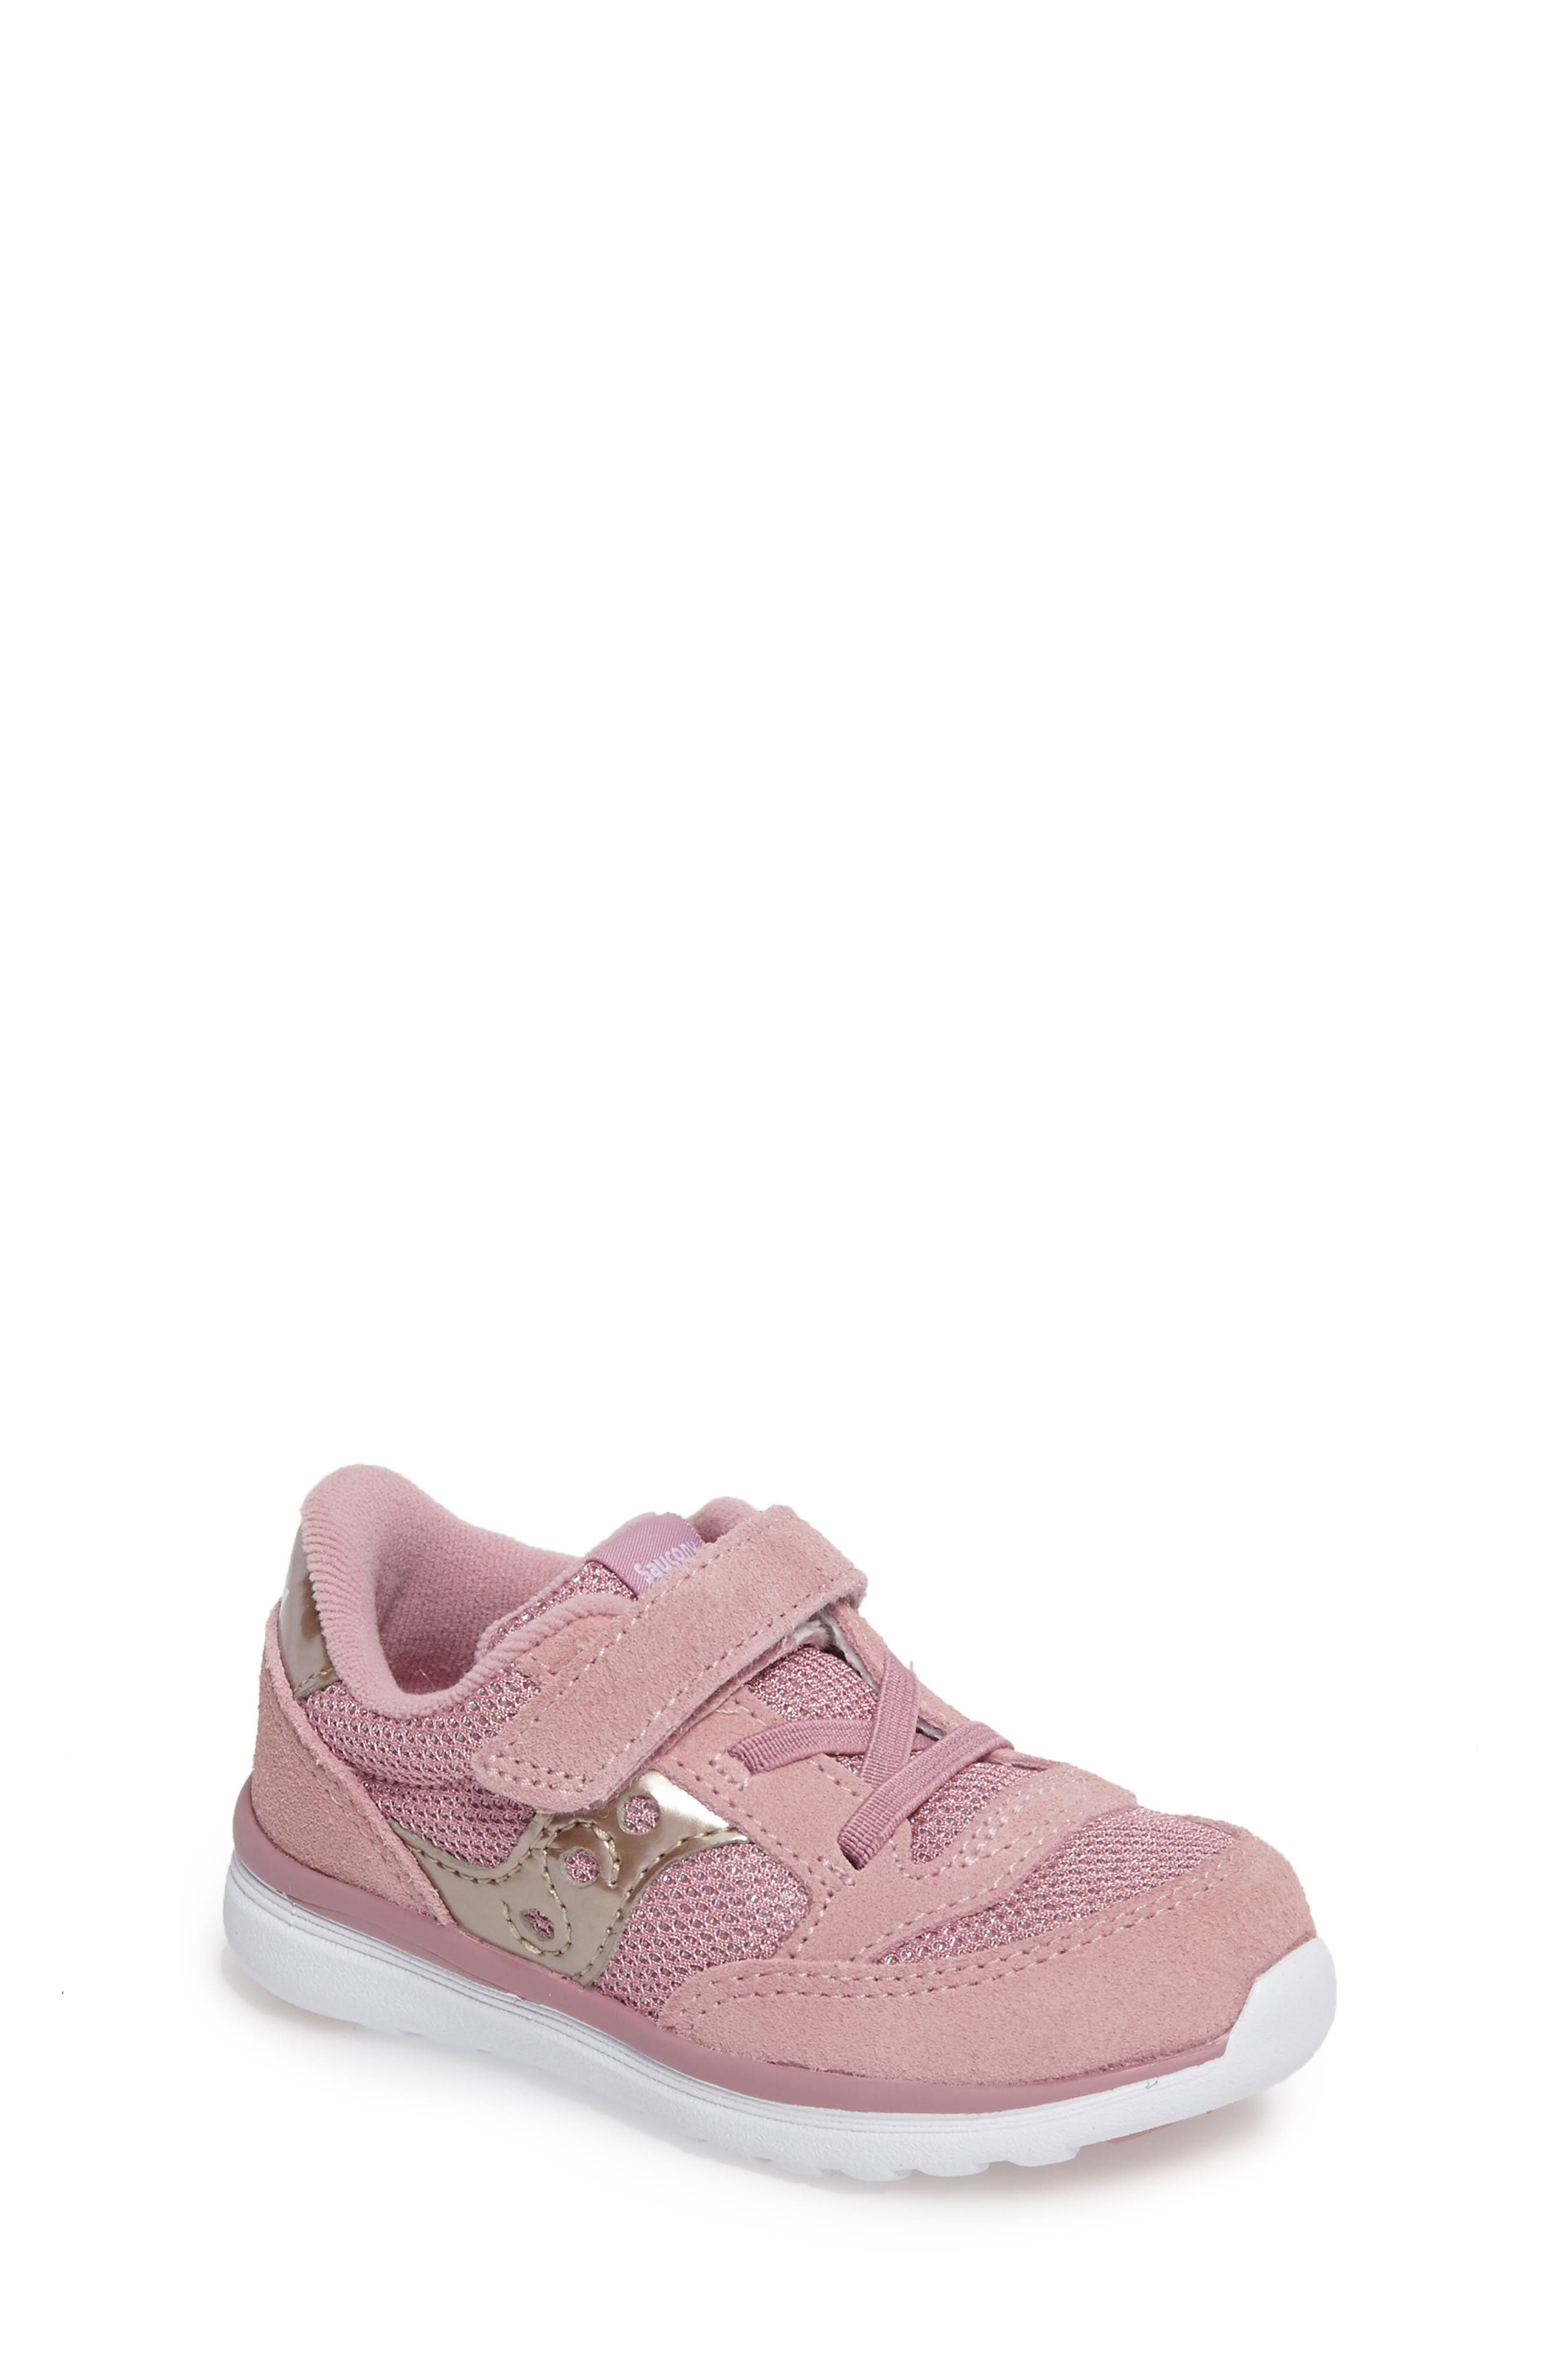 Jazz Lite Sneaker,                             Main thumbnail 1, color,                             BLUSH METALLIC